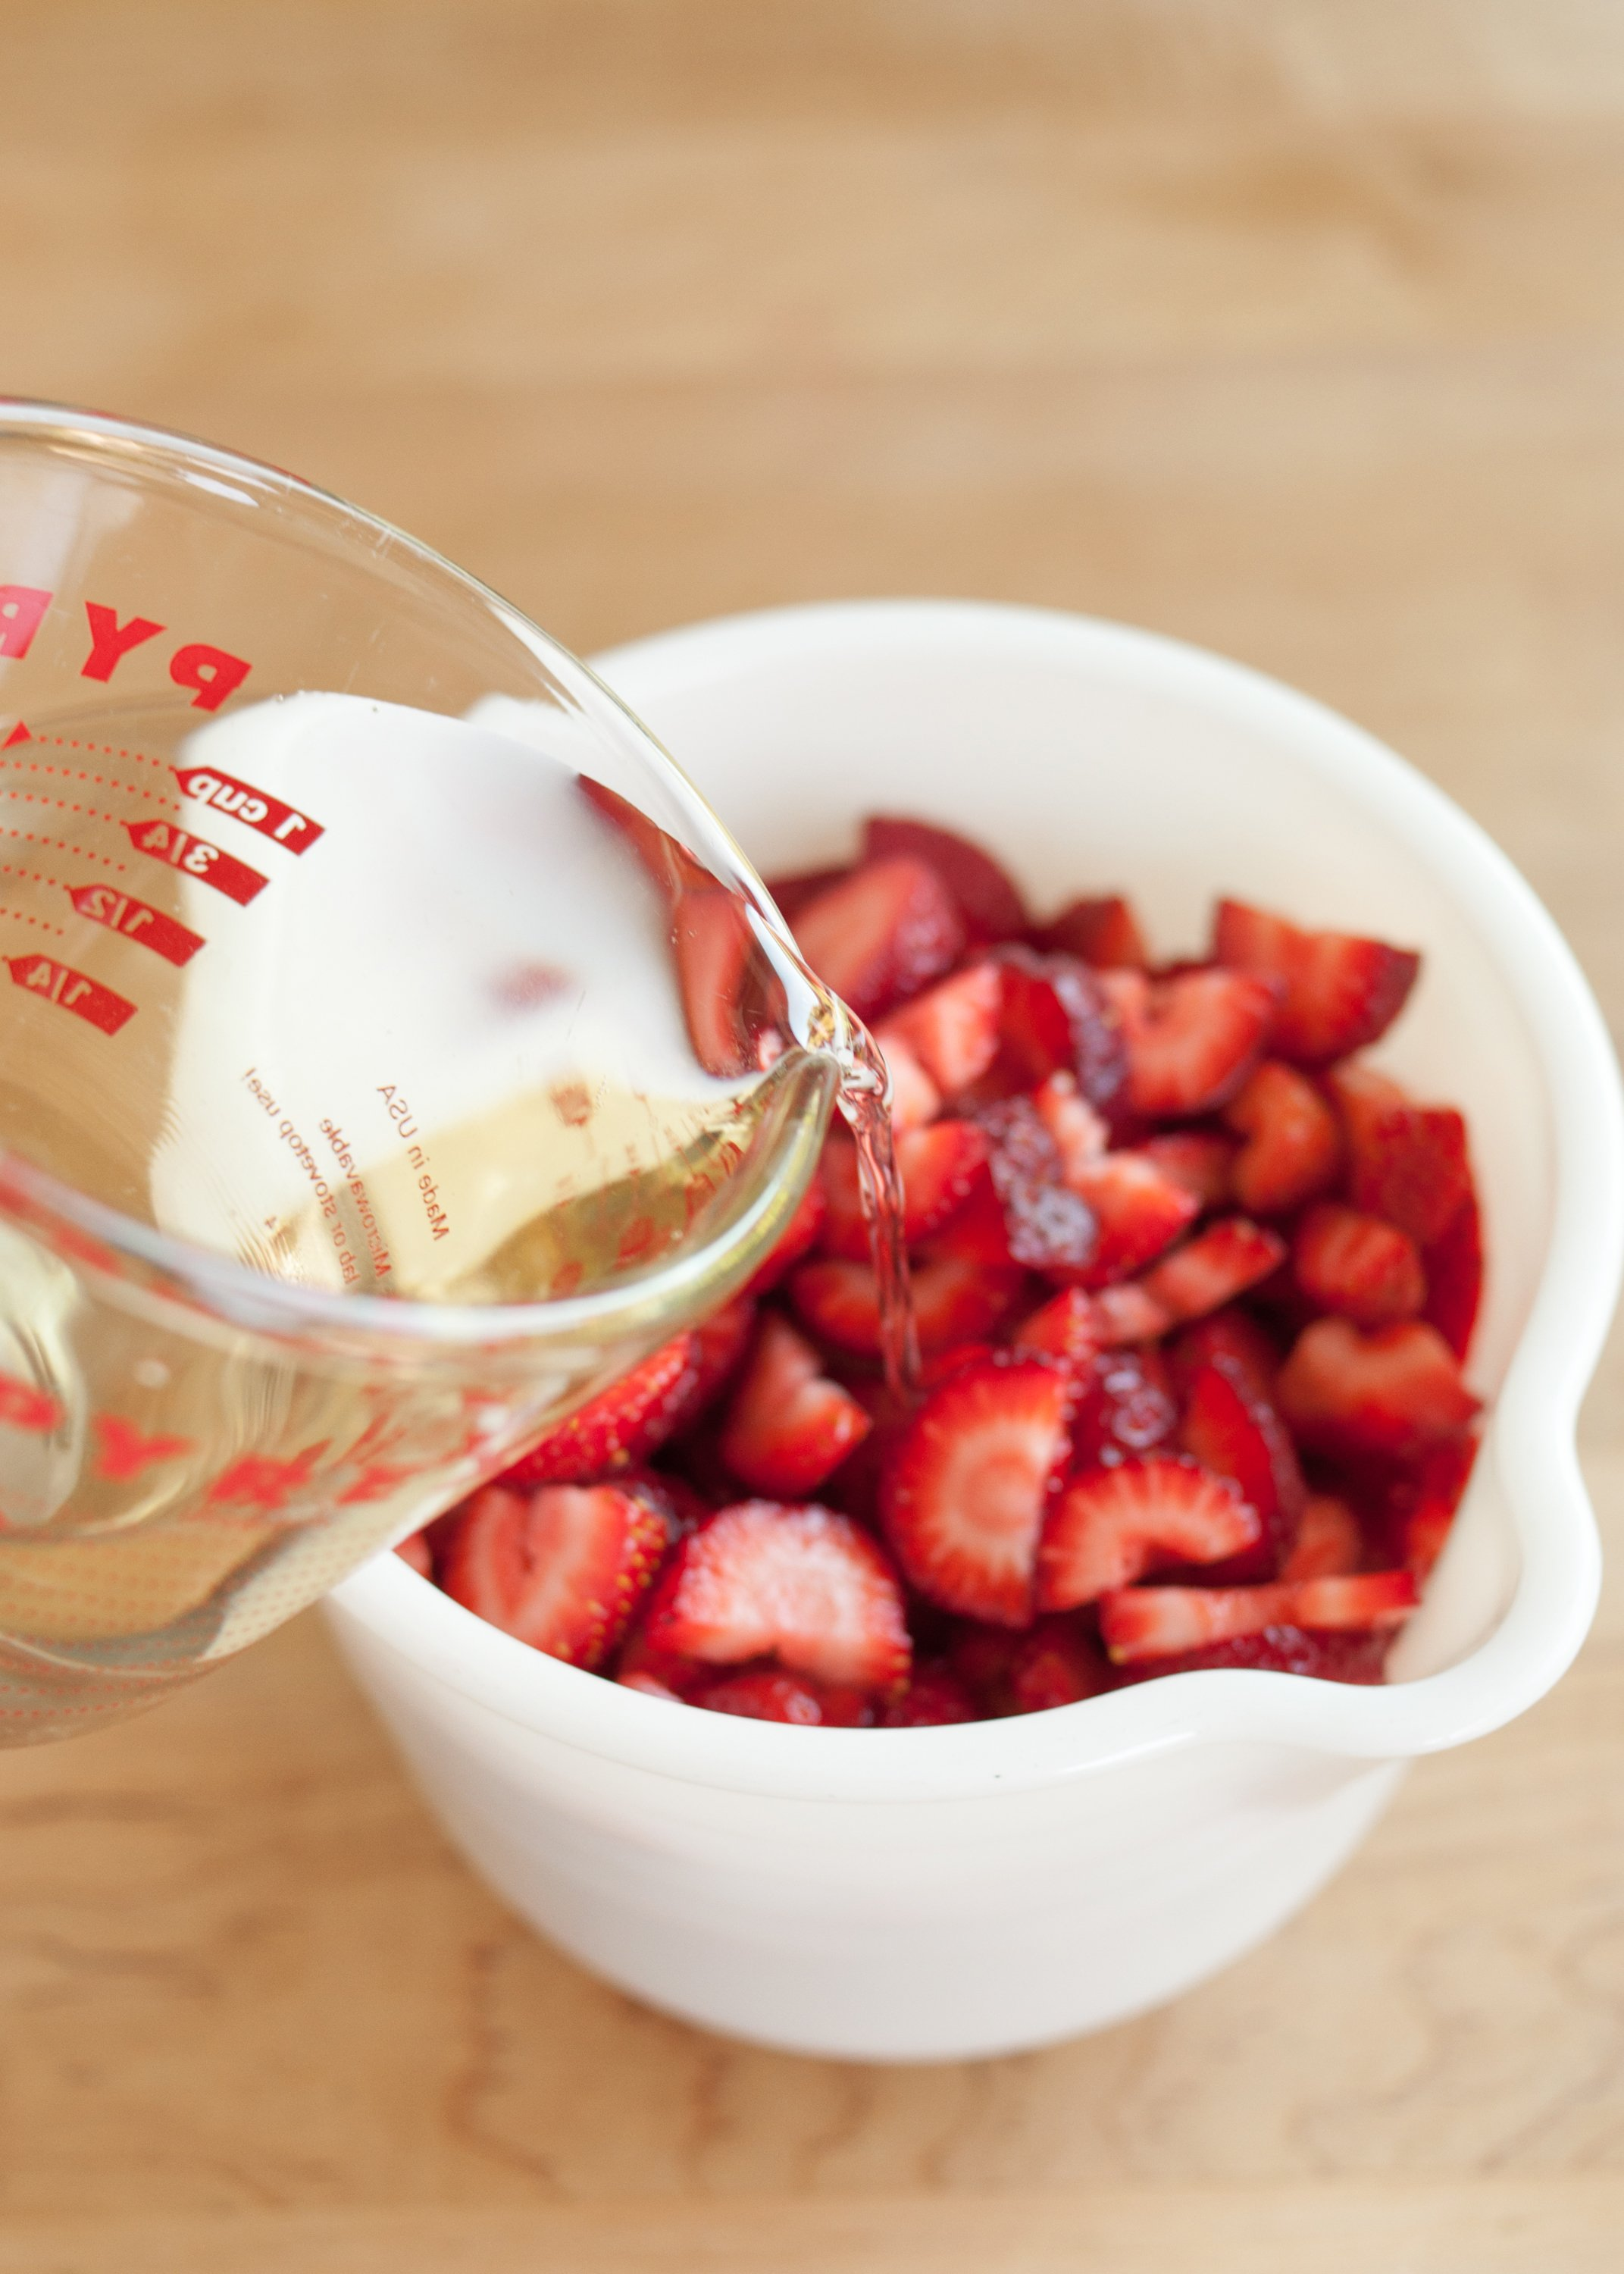 How To Make Sorbet with Any Fruit